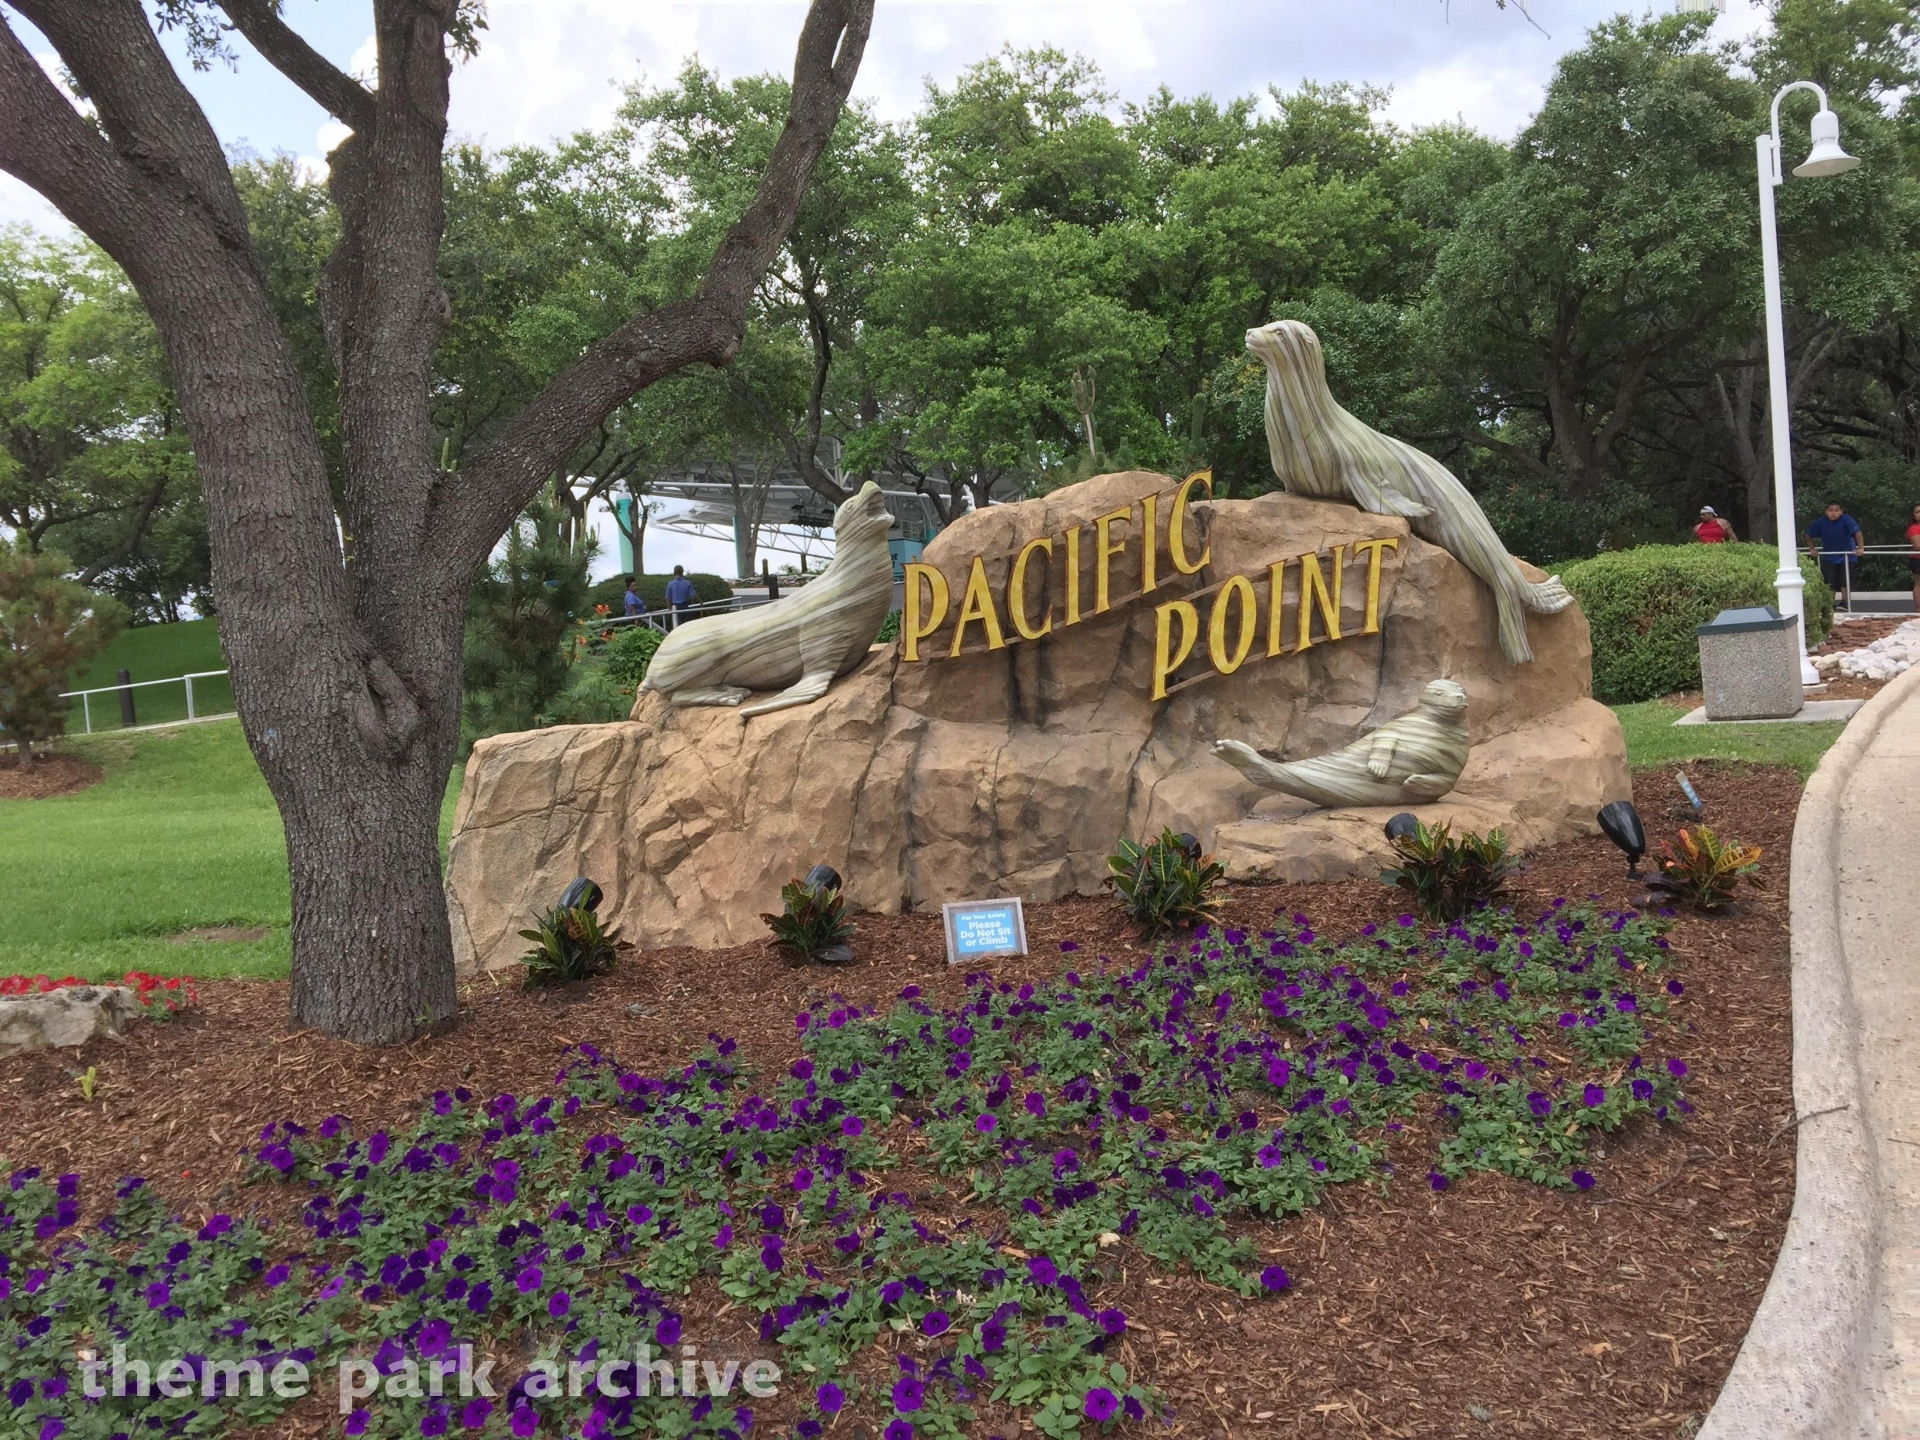 Pacific Point at Sea World San Antonio | Theme Park Archive